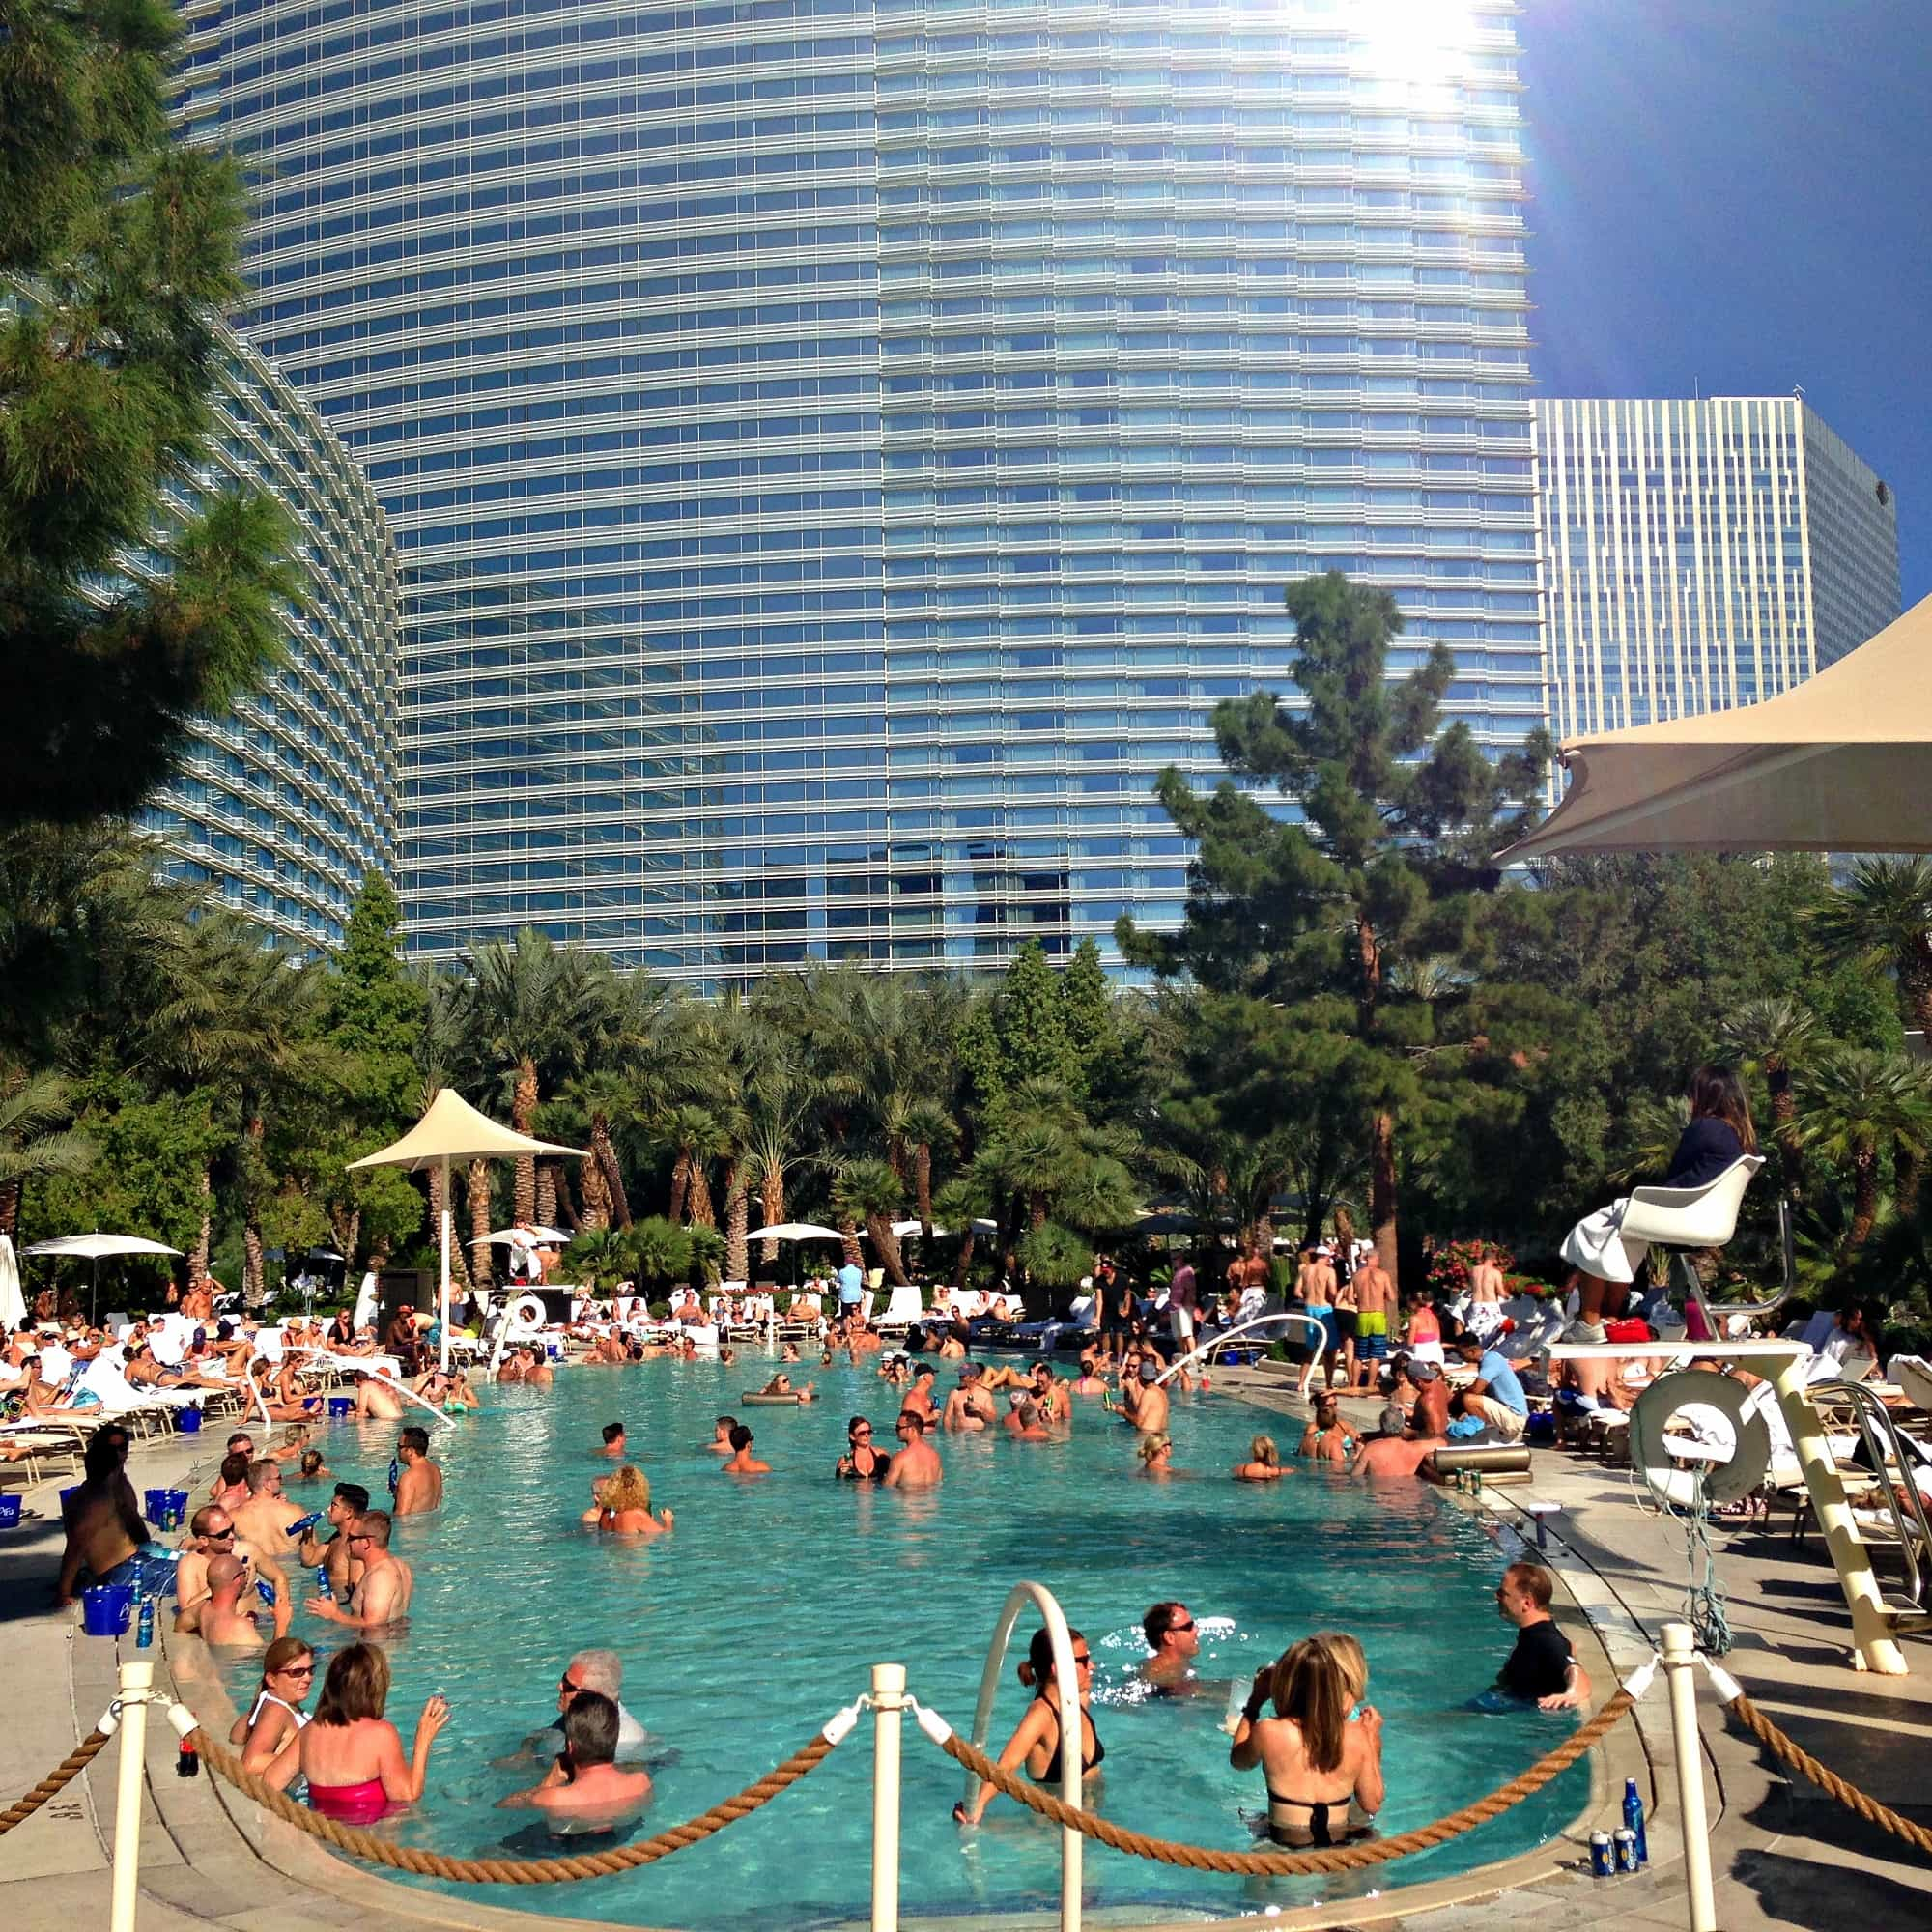 Chill out at the Aria pool with your girlfriends in Las Vegas